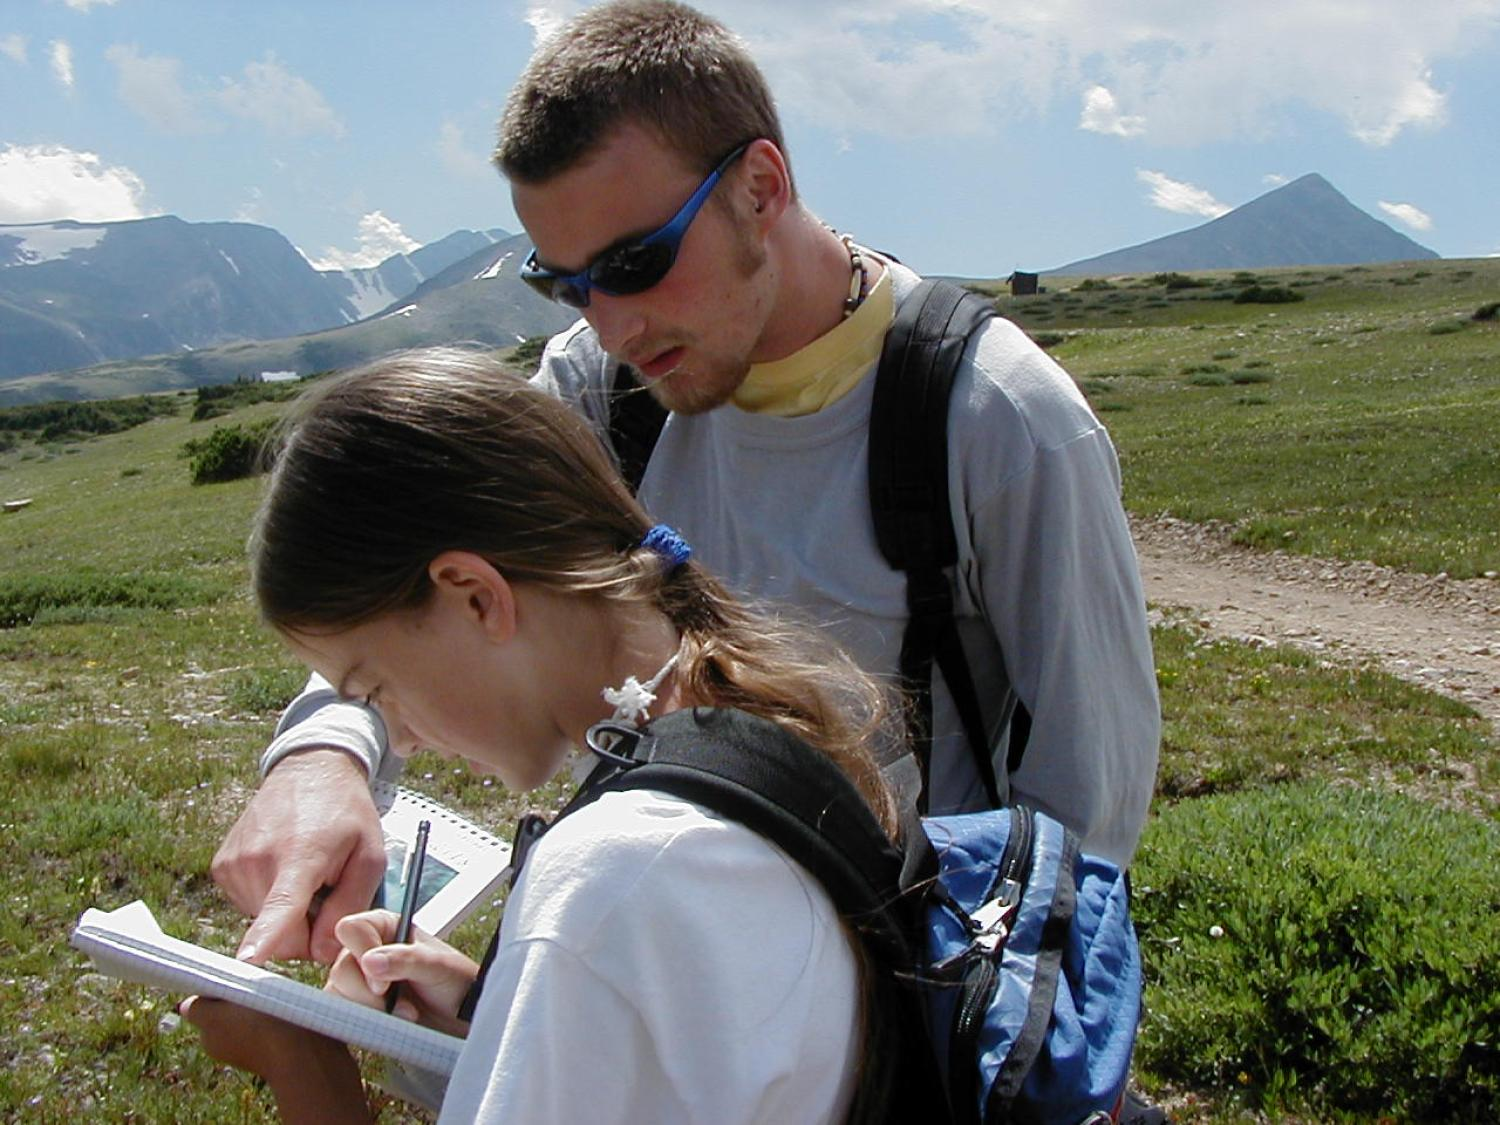 An elementary school student learns about treeline processes and alpine tundra at an elevation of about 11,400' near Ward, Colorado. August 2000.